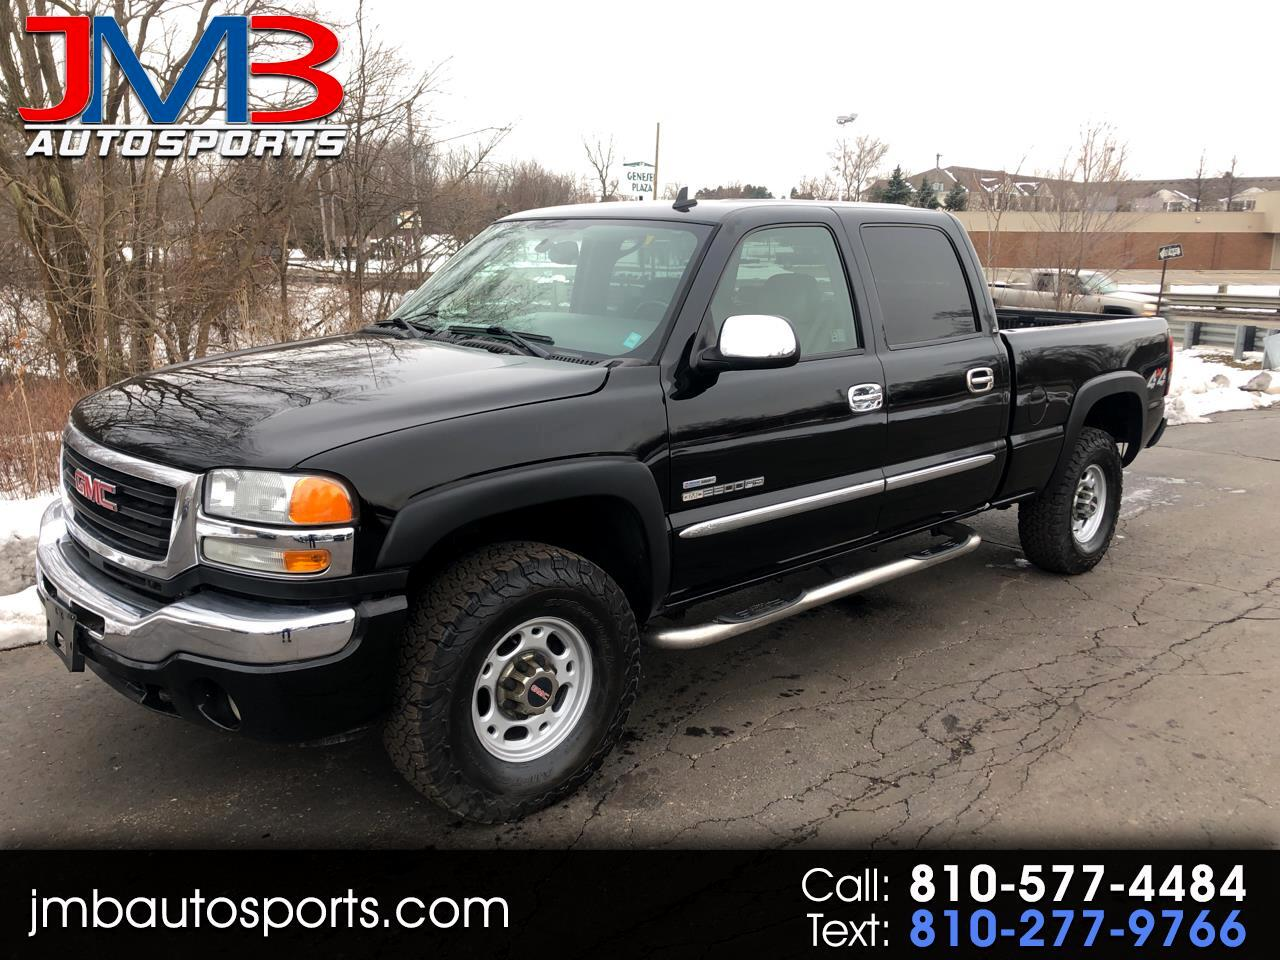 GMC Sierra 2500HD SLT Crew Cab Short Bed 4WD 2006